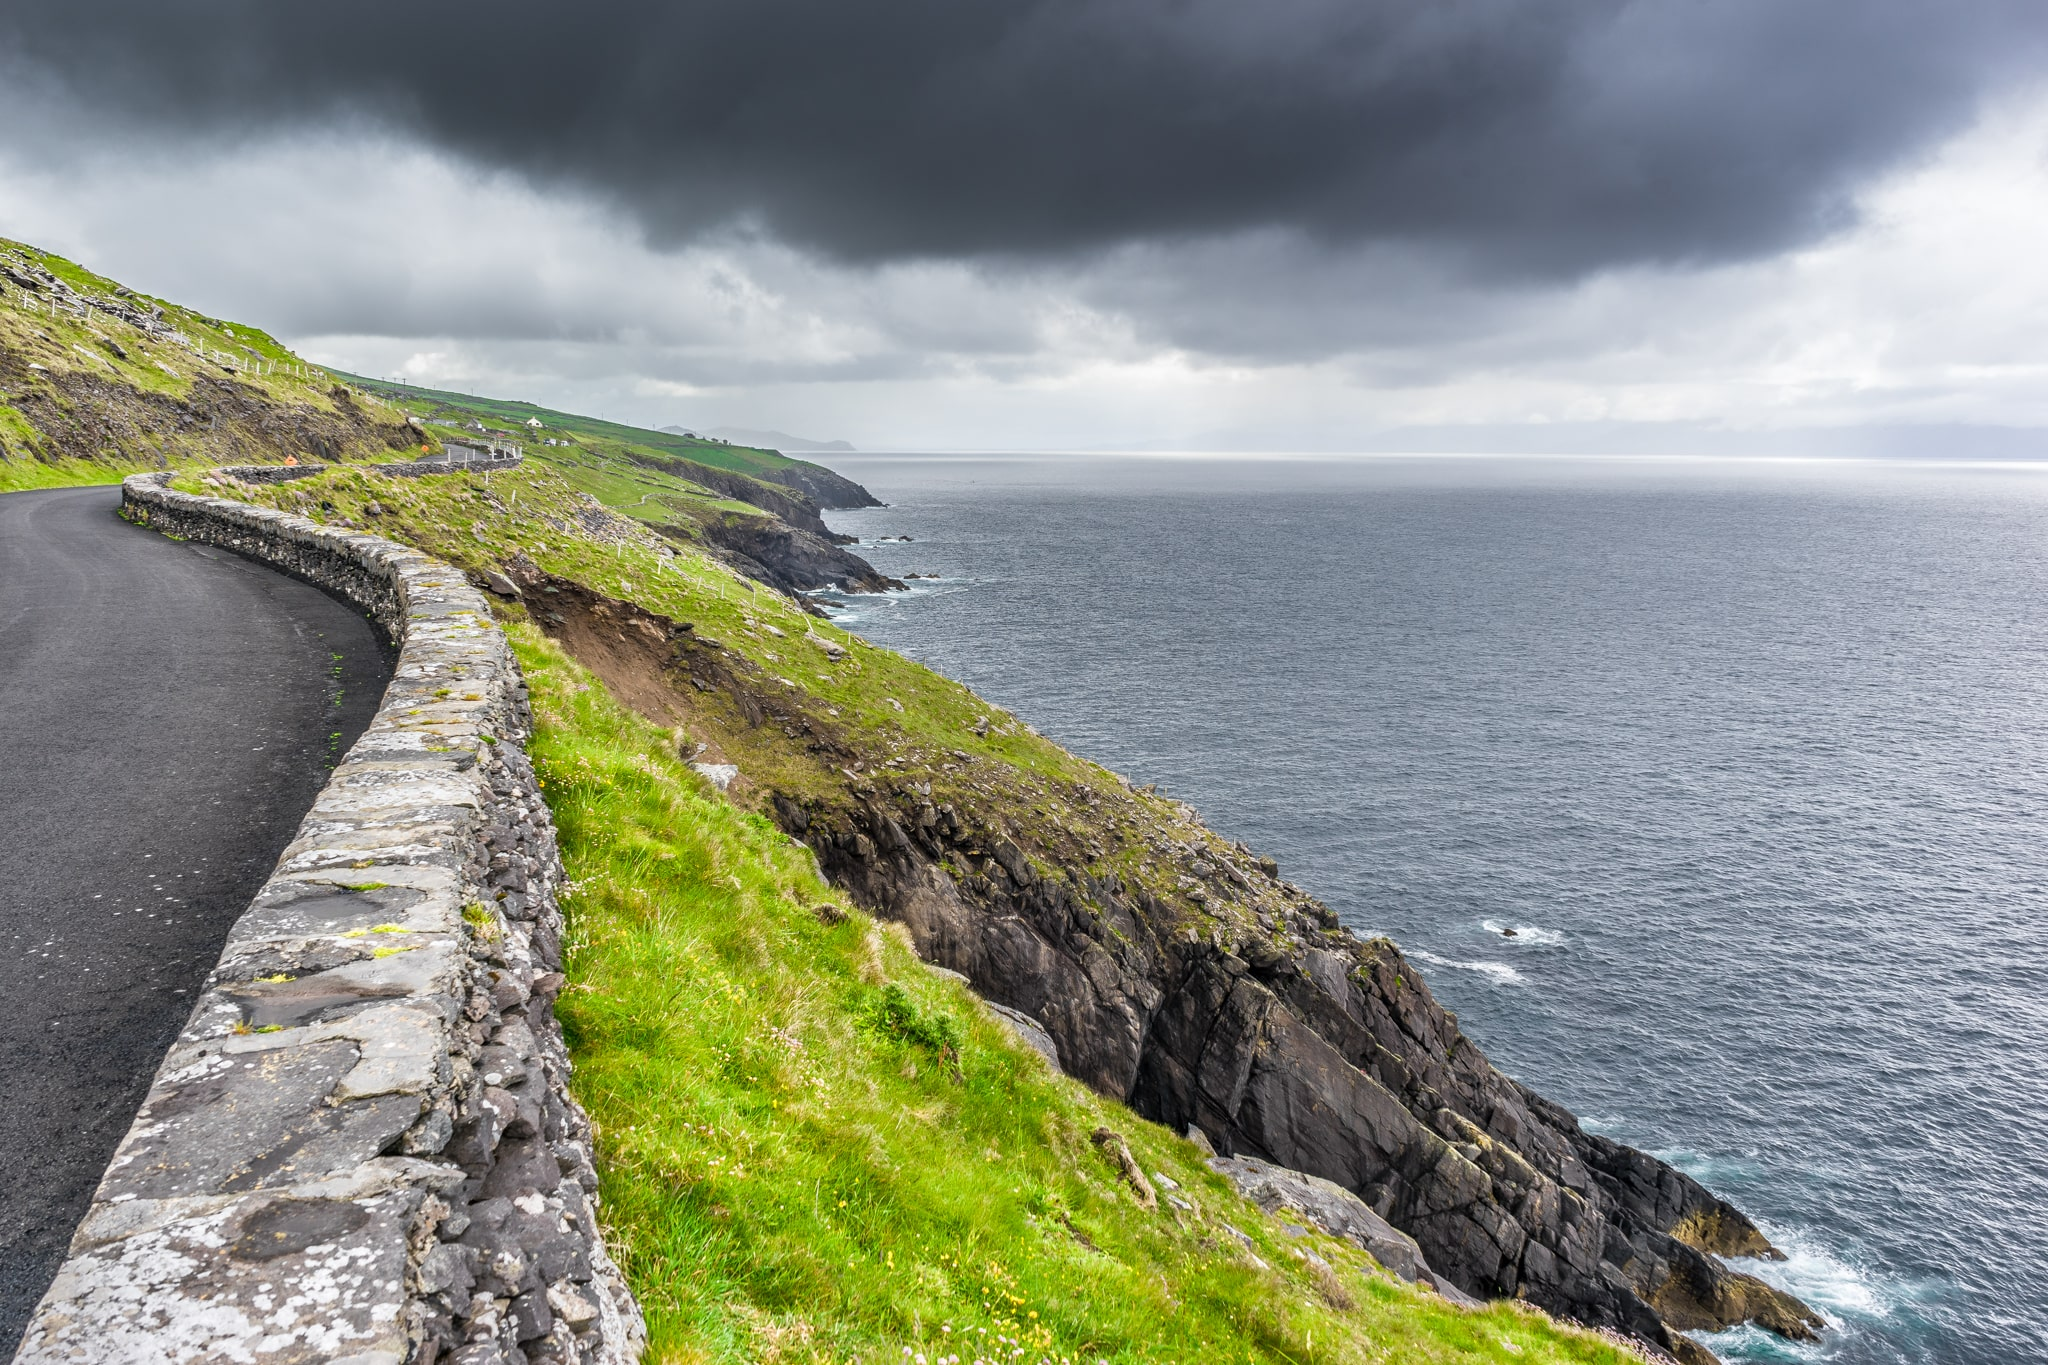 Driving around Dingle is an awesome thing to do in Ireland